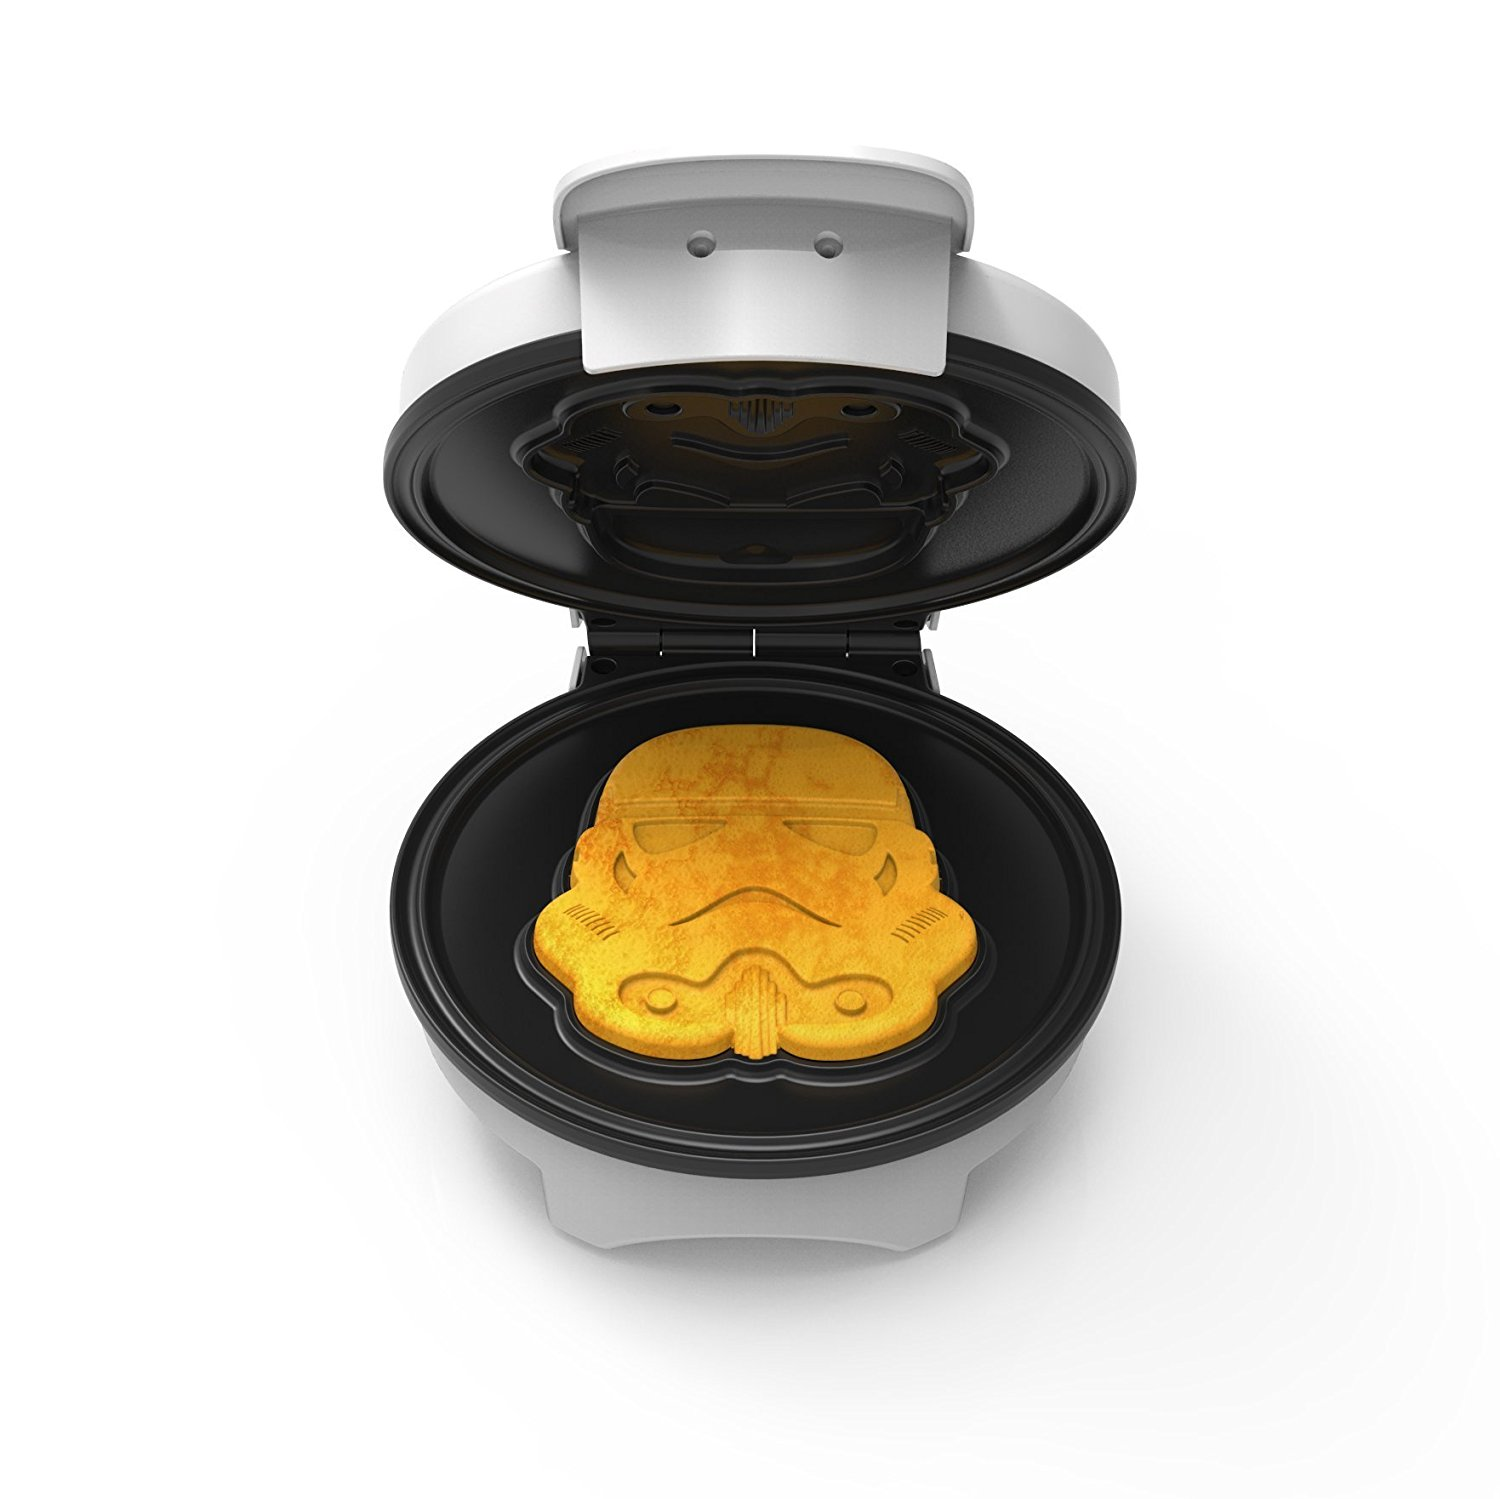 Father's Day Star Wars Waffle Maker,